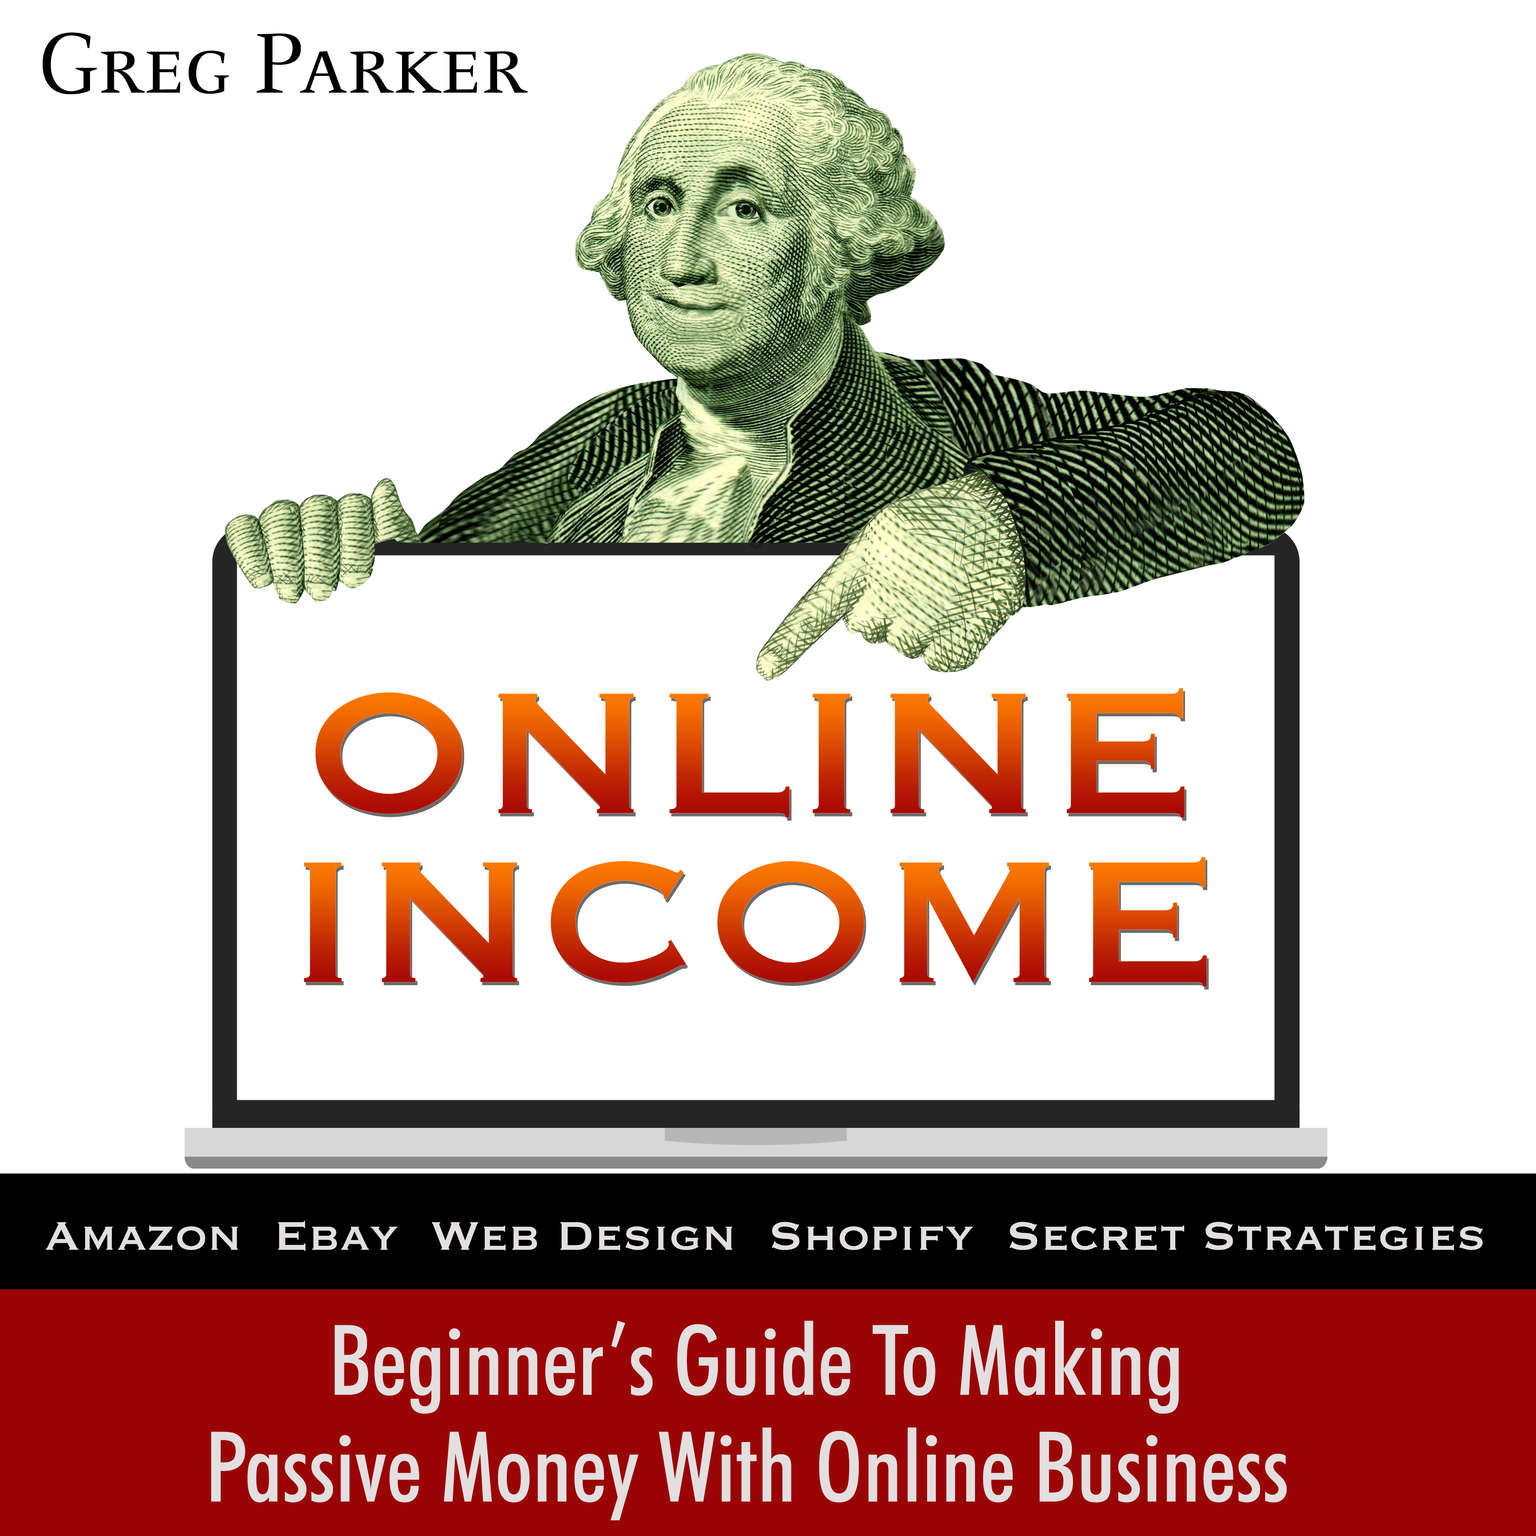 Online Income: Beginner's Guide To Making passive Money with online business (Amazon, Ebay, Web Design, Shopify, Secret Strategies): Beginner's Guide To Making Passive Money with Online Business (Amazon, Ebay, Web Design, Shopify, Secret Strategies) Audiobook, by Greg Parker